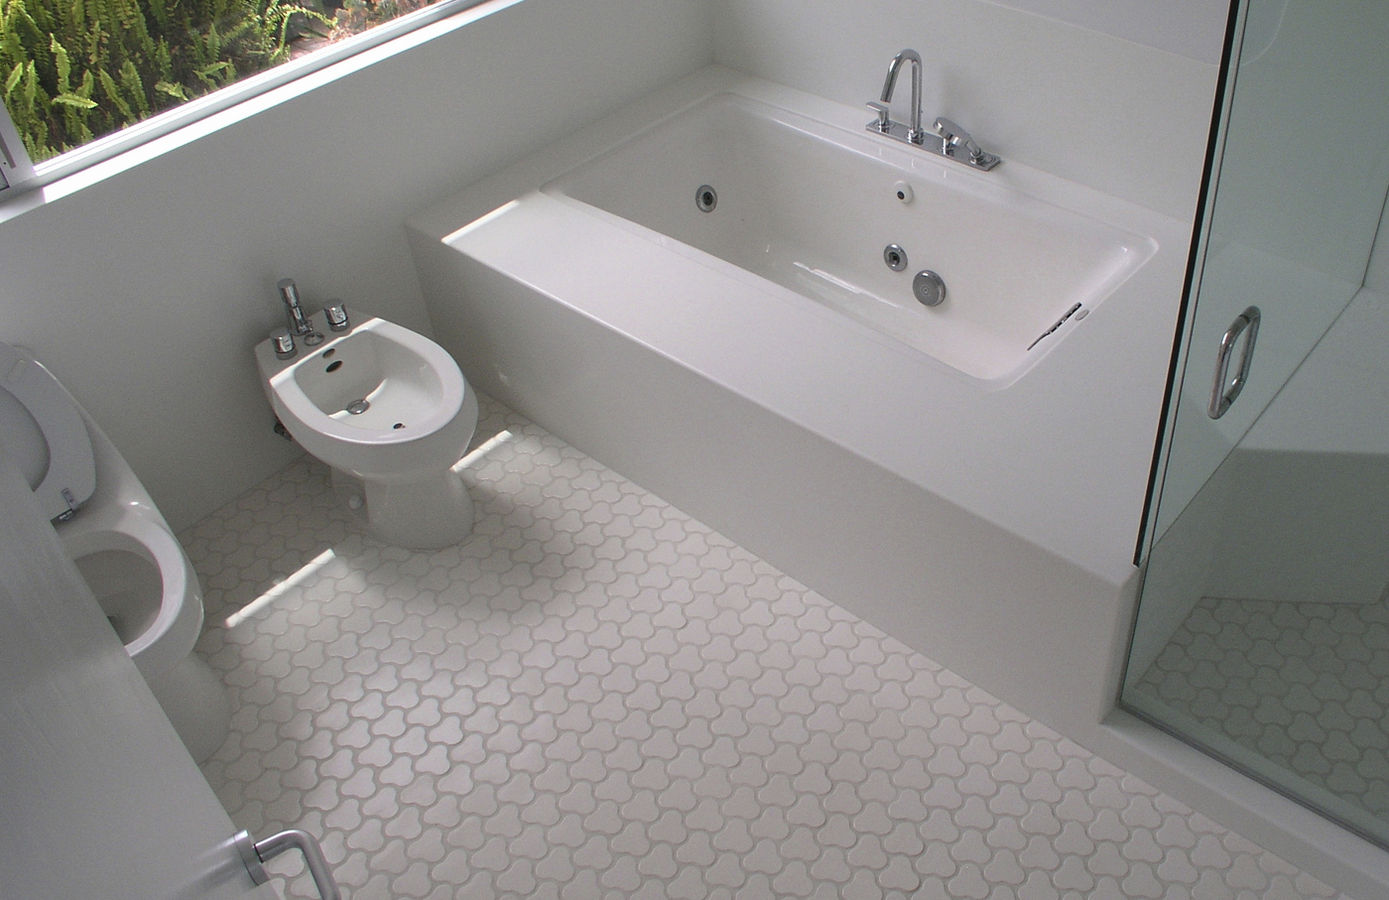 bathroom-exciting-vintage-bathroom-tile-patterns-cool-floor-ideas-with-white-ceramic-pattern-floor-tile-bathroom-and-white-corner-rectangular-bathtub-plus-modern-white-toilet-as-well-as-bathroom-tile